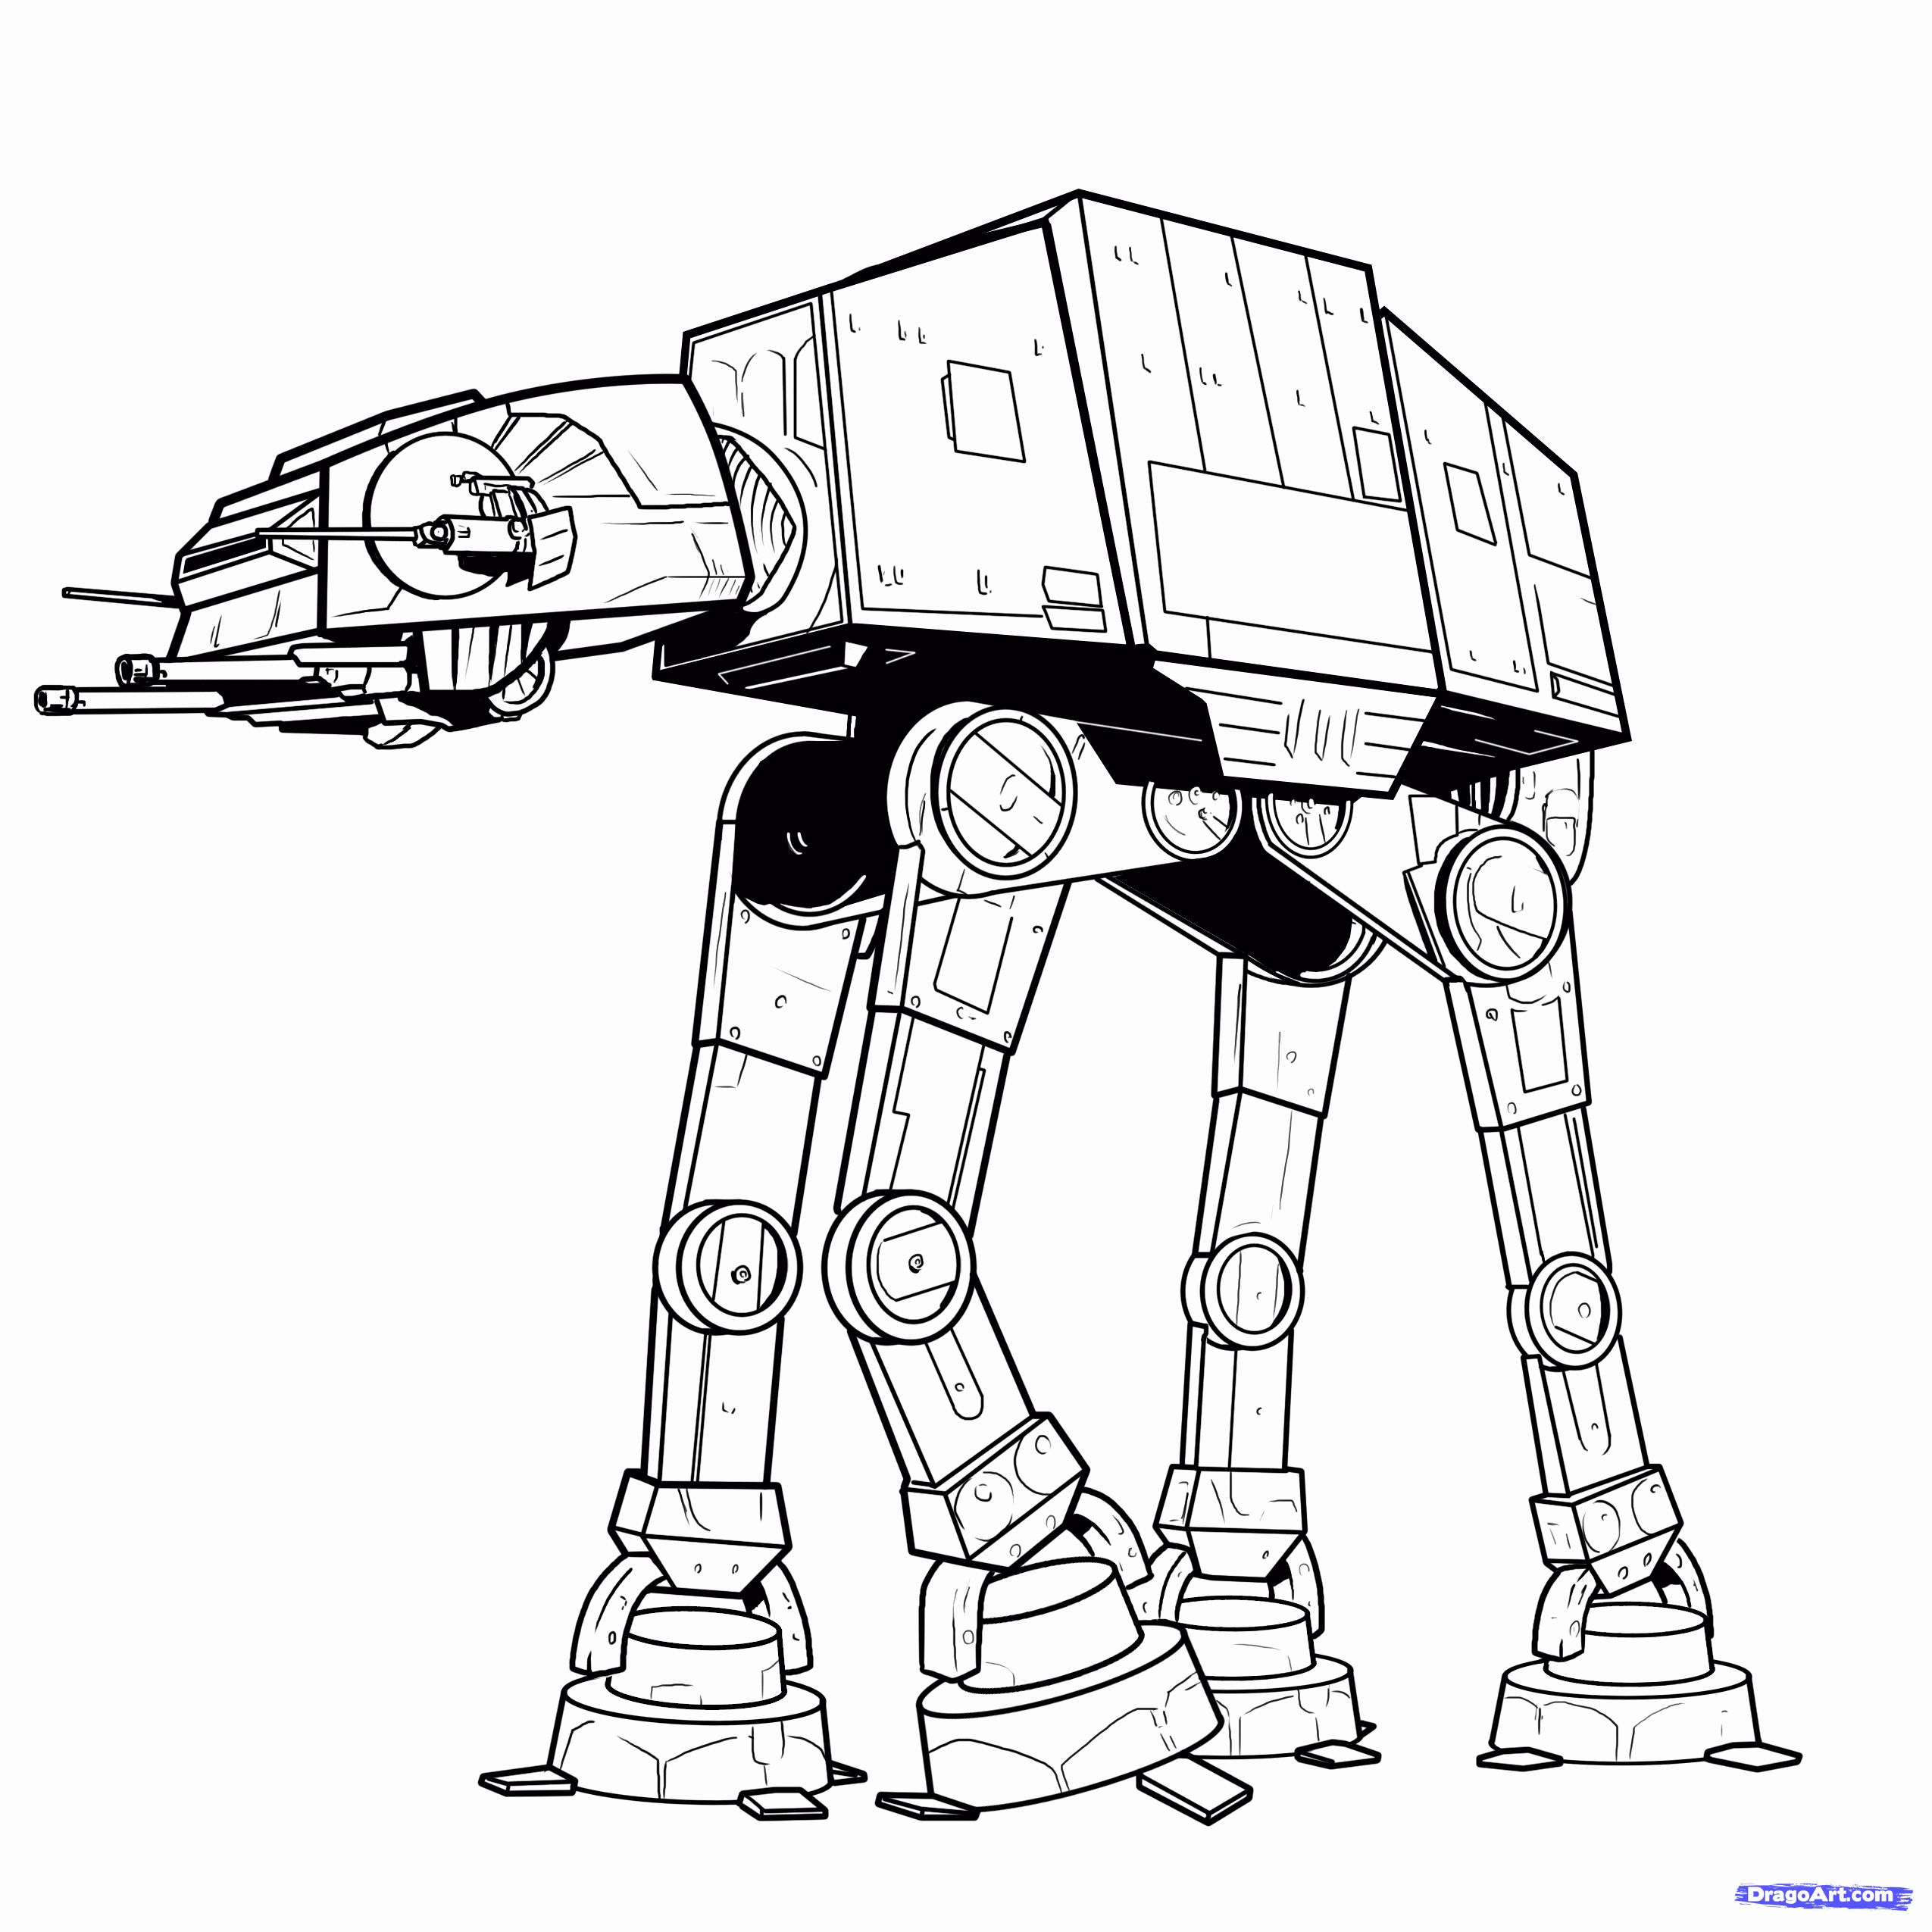 Space Characters Coloring Pages Luxury Coloring Pages Of Space Walkers Star Wars Coloring Book Star Wars Coloring Sheet Star Wars Colors